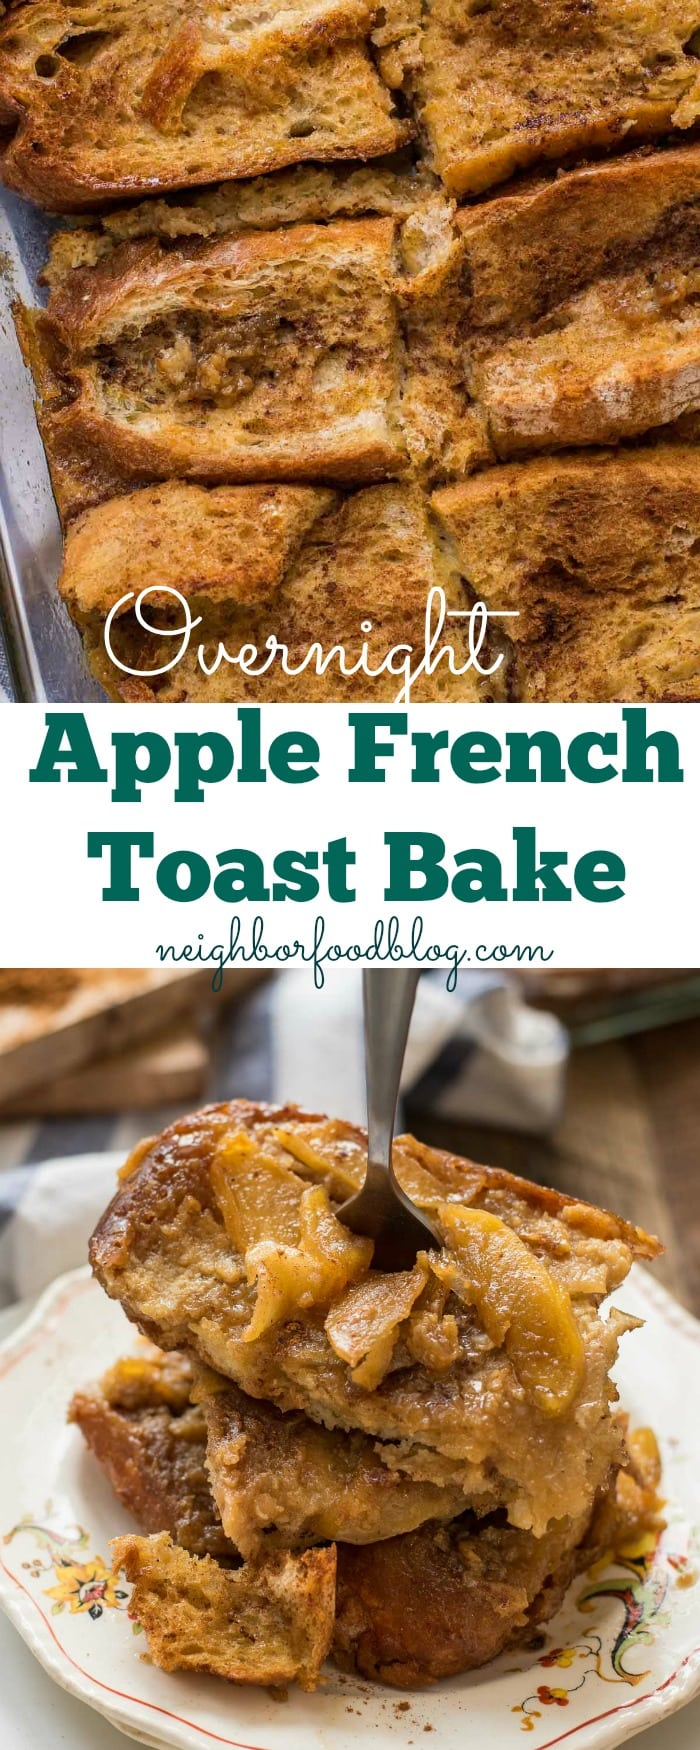 This Overnight Apple French Toast bake is easy to make and the perfect cozy fall breakfast.